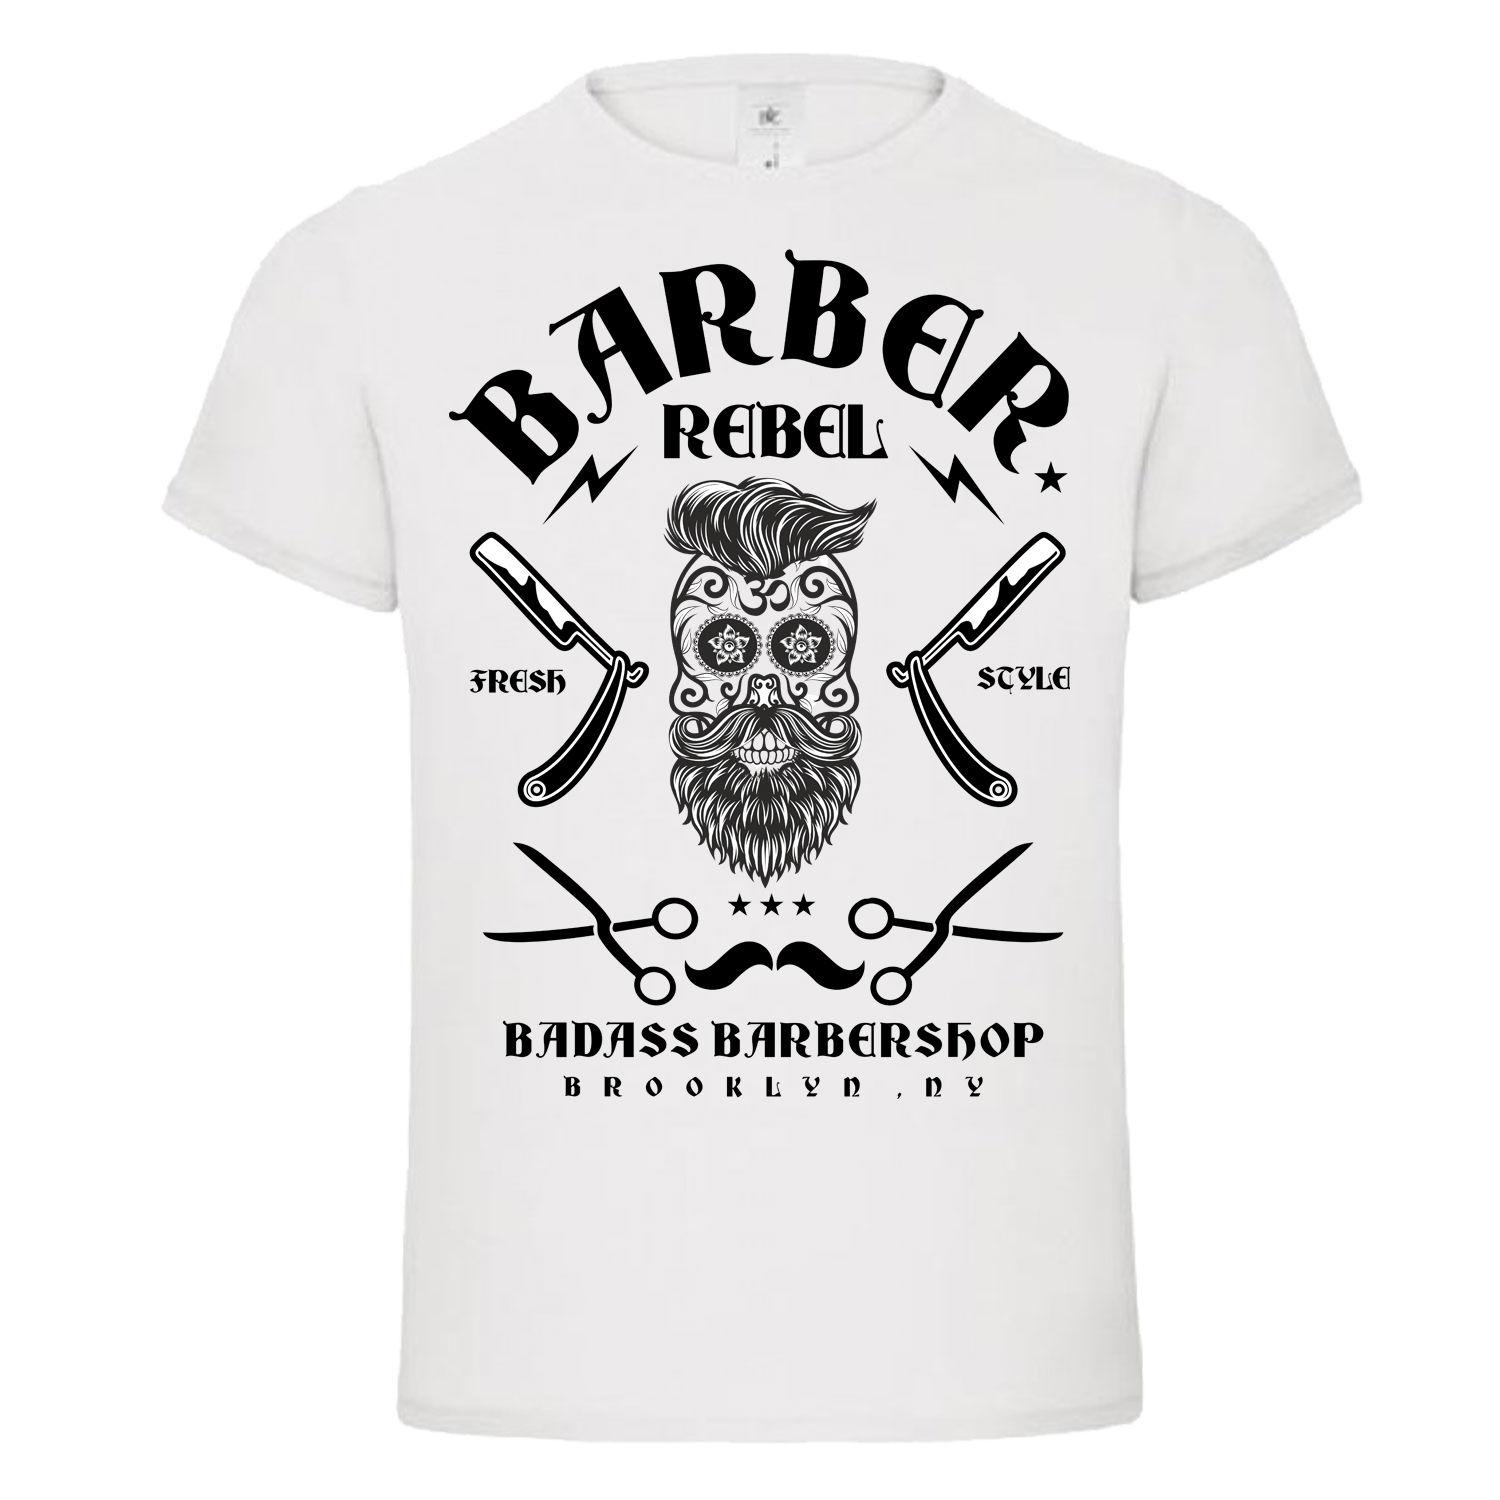 ad0d4abdabe BADASS BARBER REBEL 2 Skull Moustache Tattoo T Shirt Dtg NEW DESIGN Top Tee  Men T Shirt 2018 Summer 100% Cotton Funny T Shirts For Men Make T Shirts  From ...